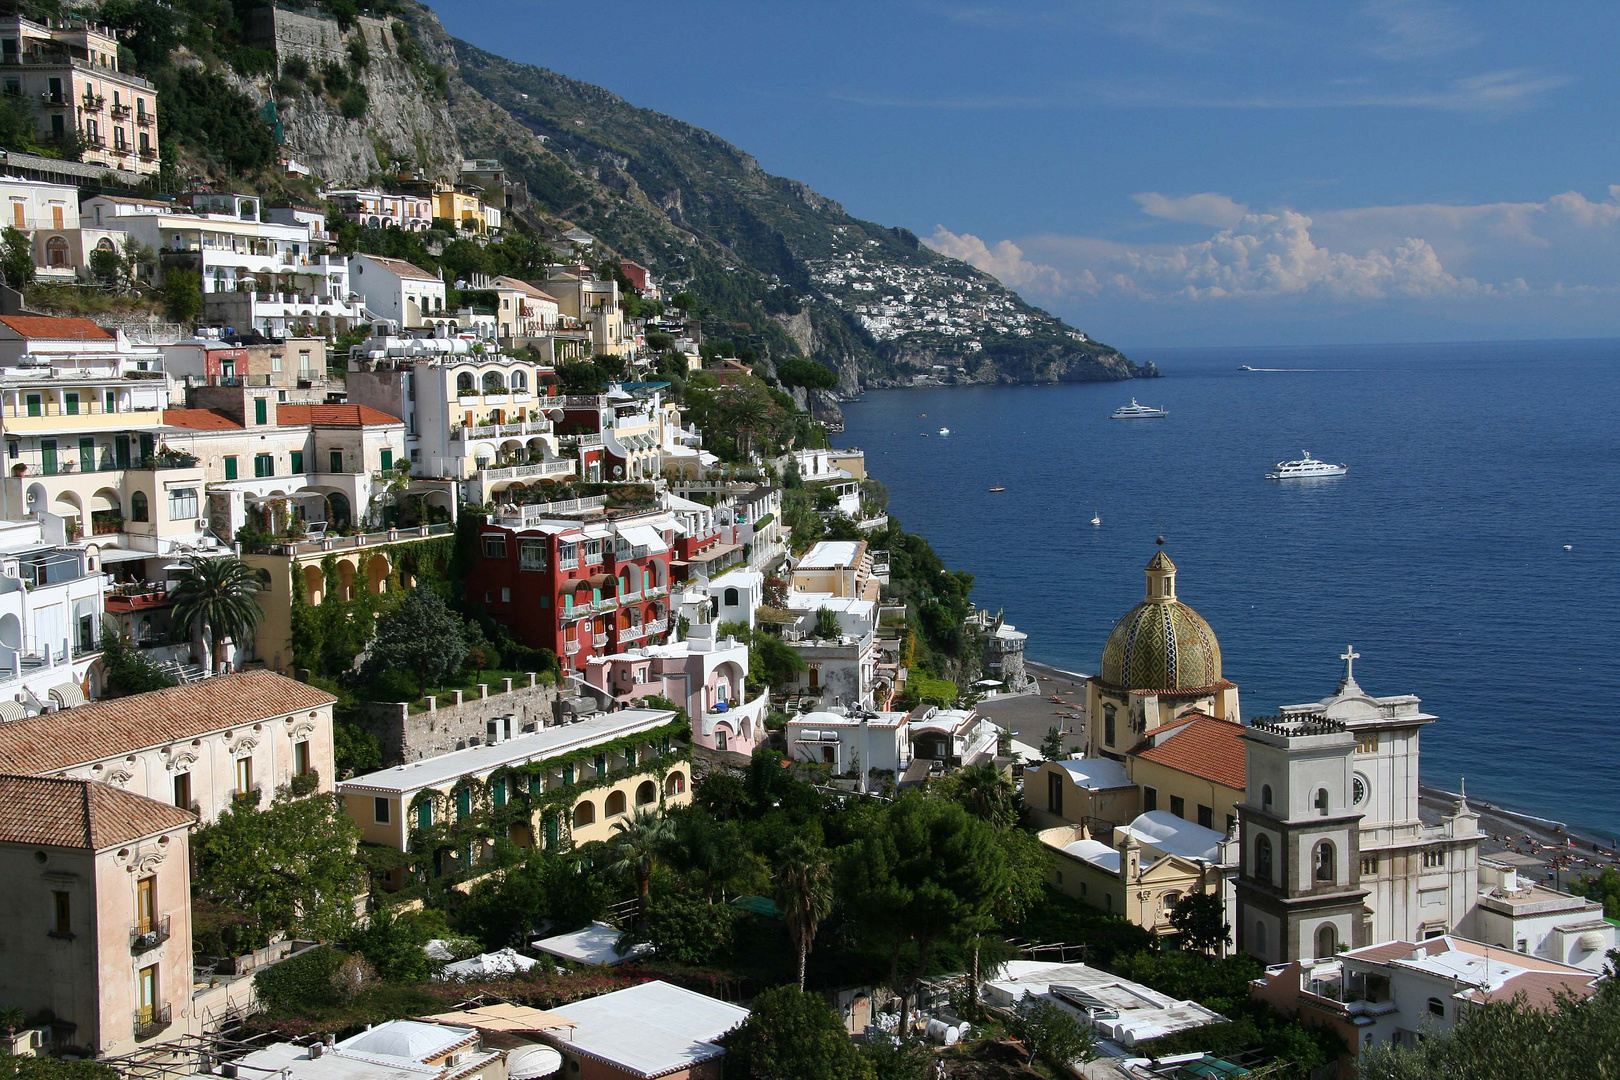 positano an der amalfi k ste foto bild europe italy vatican city s marino italy bilder. Black Bedroom Furniture Sets. Home Design Ideas